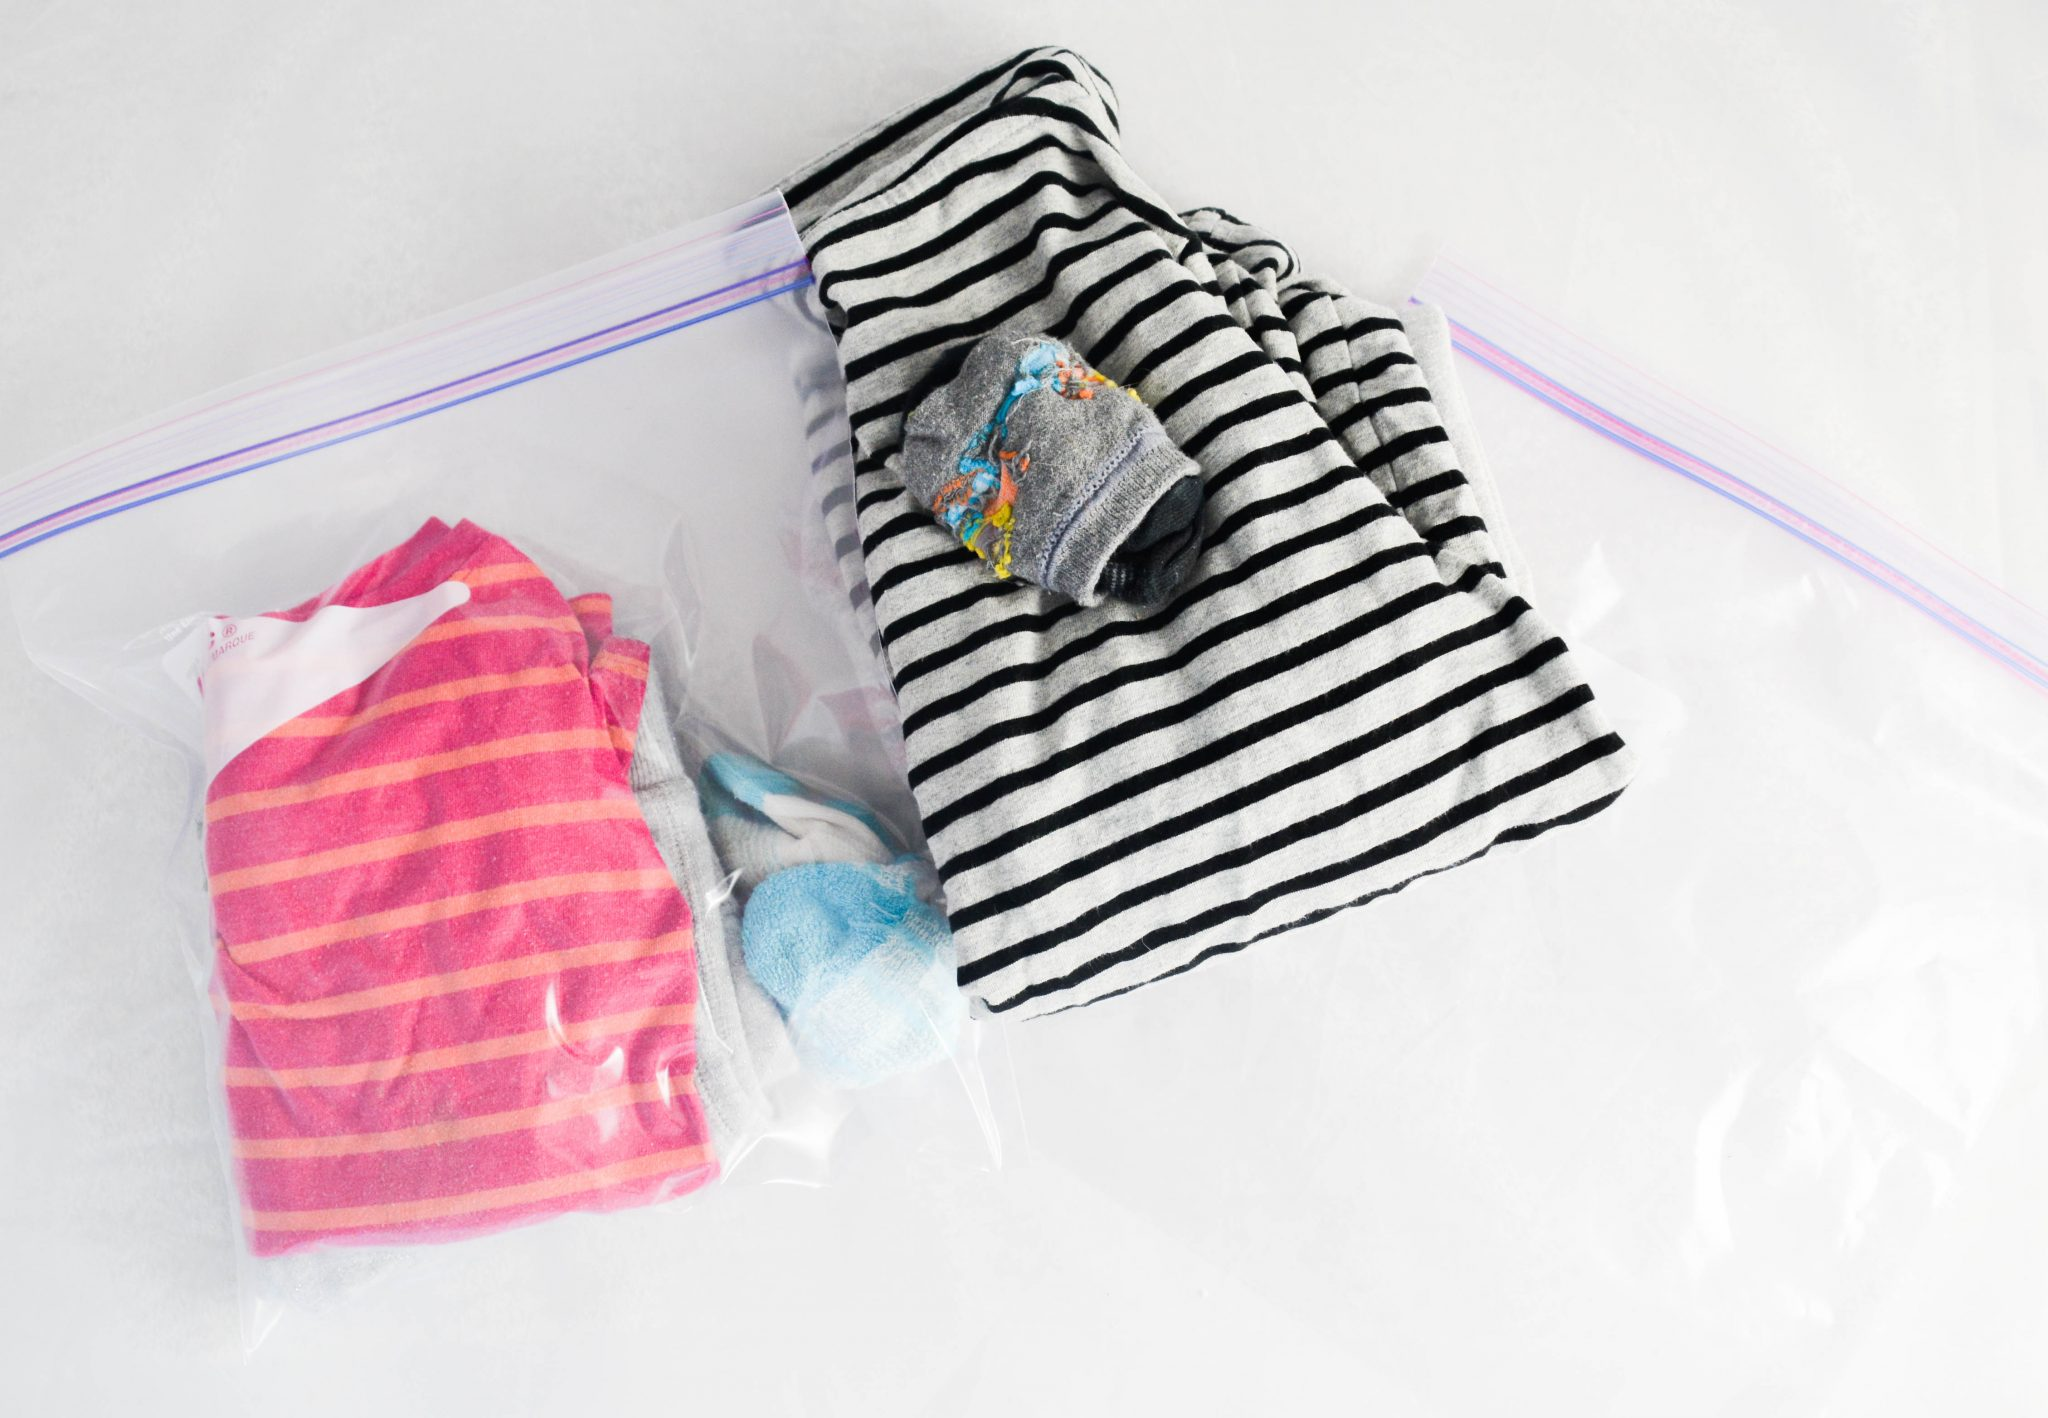 The laundry bag system: tips for doing laundry